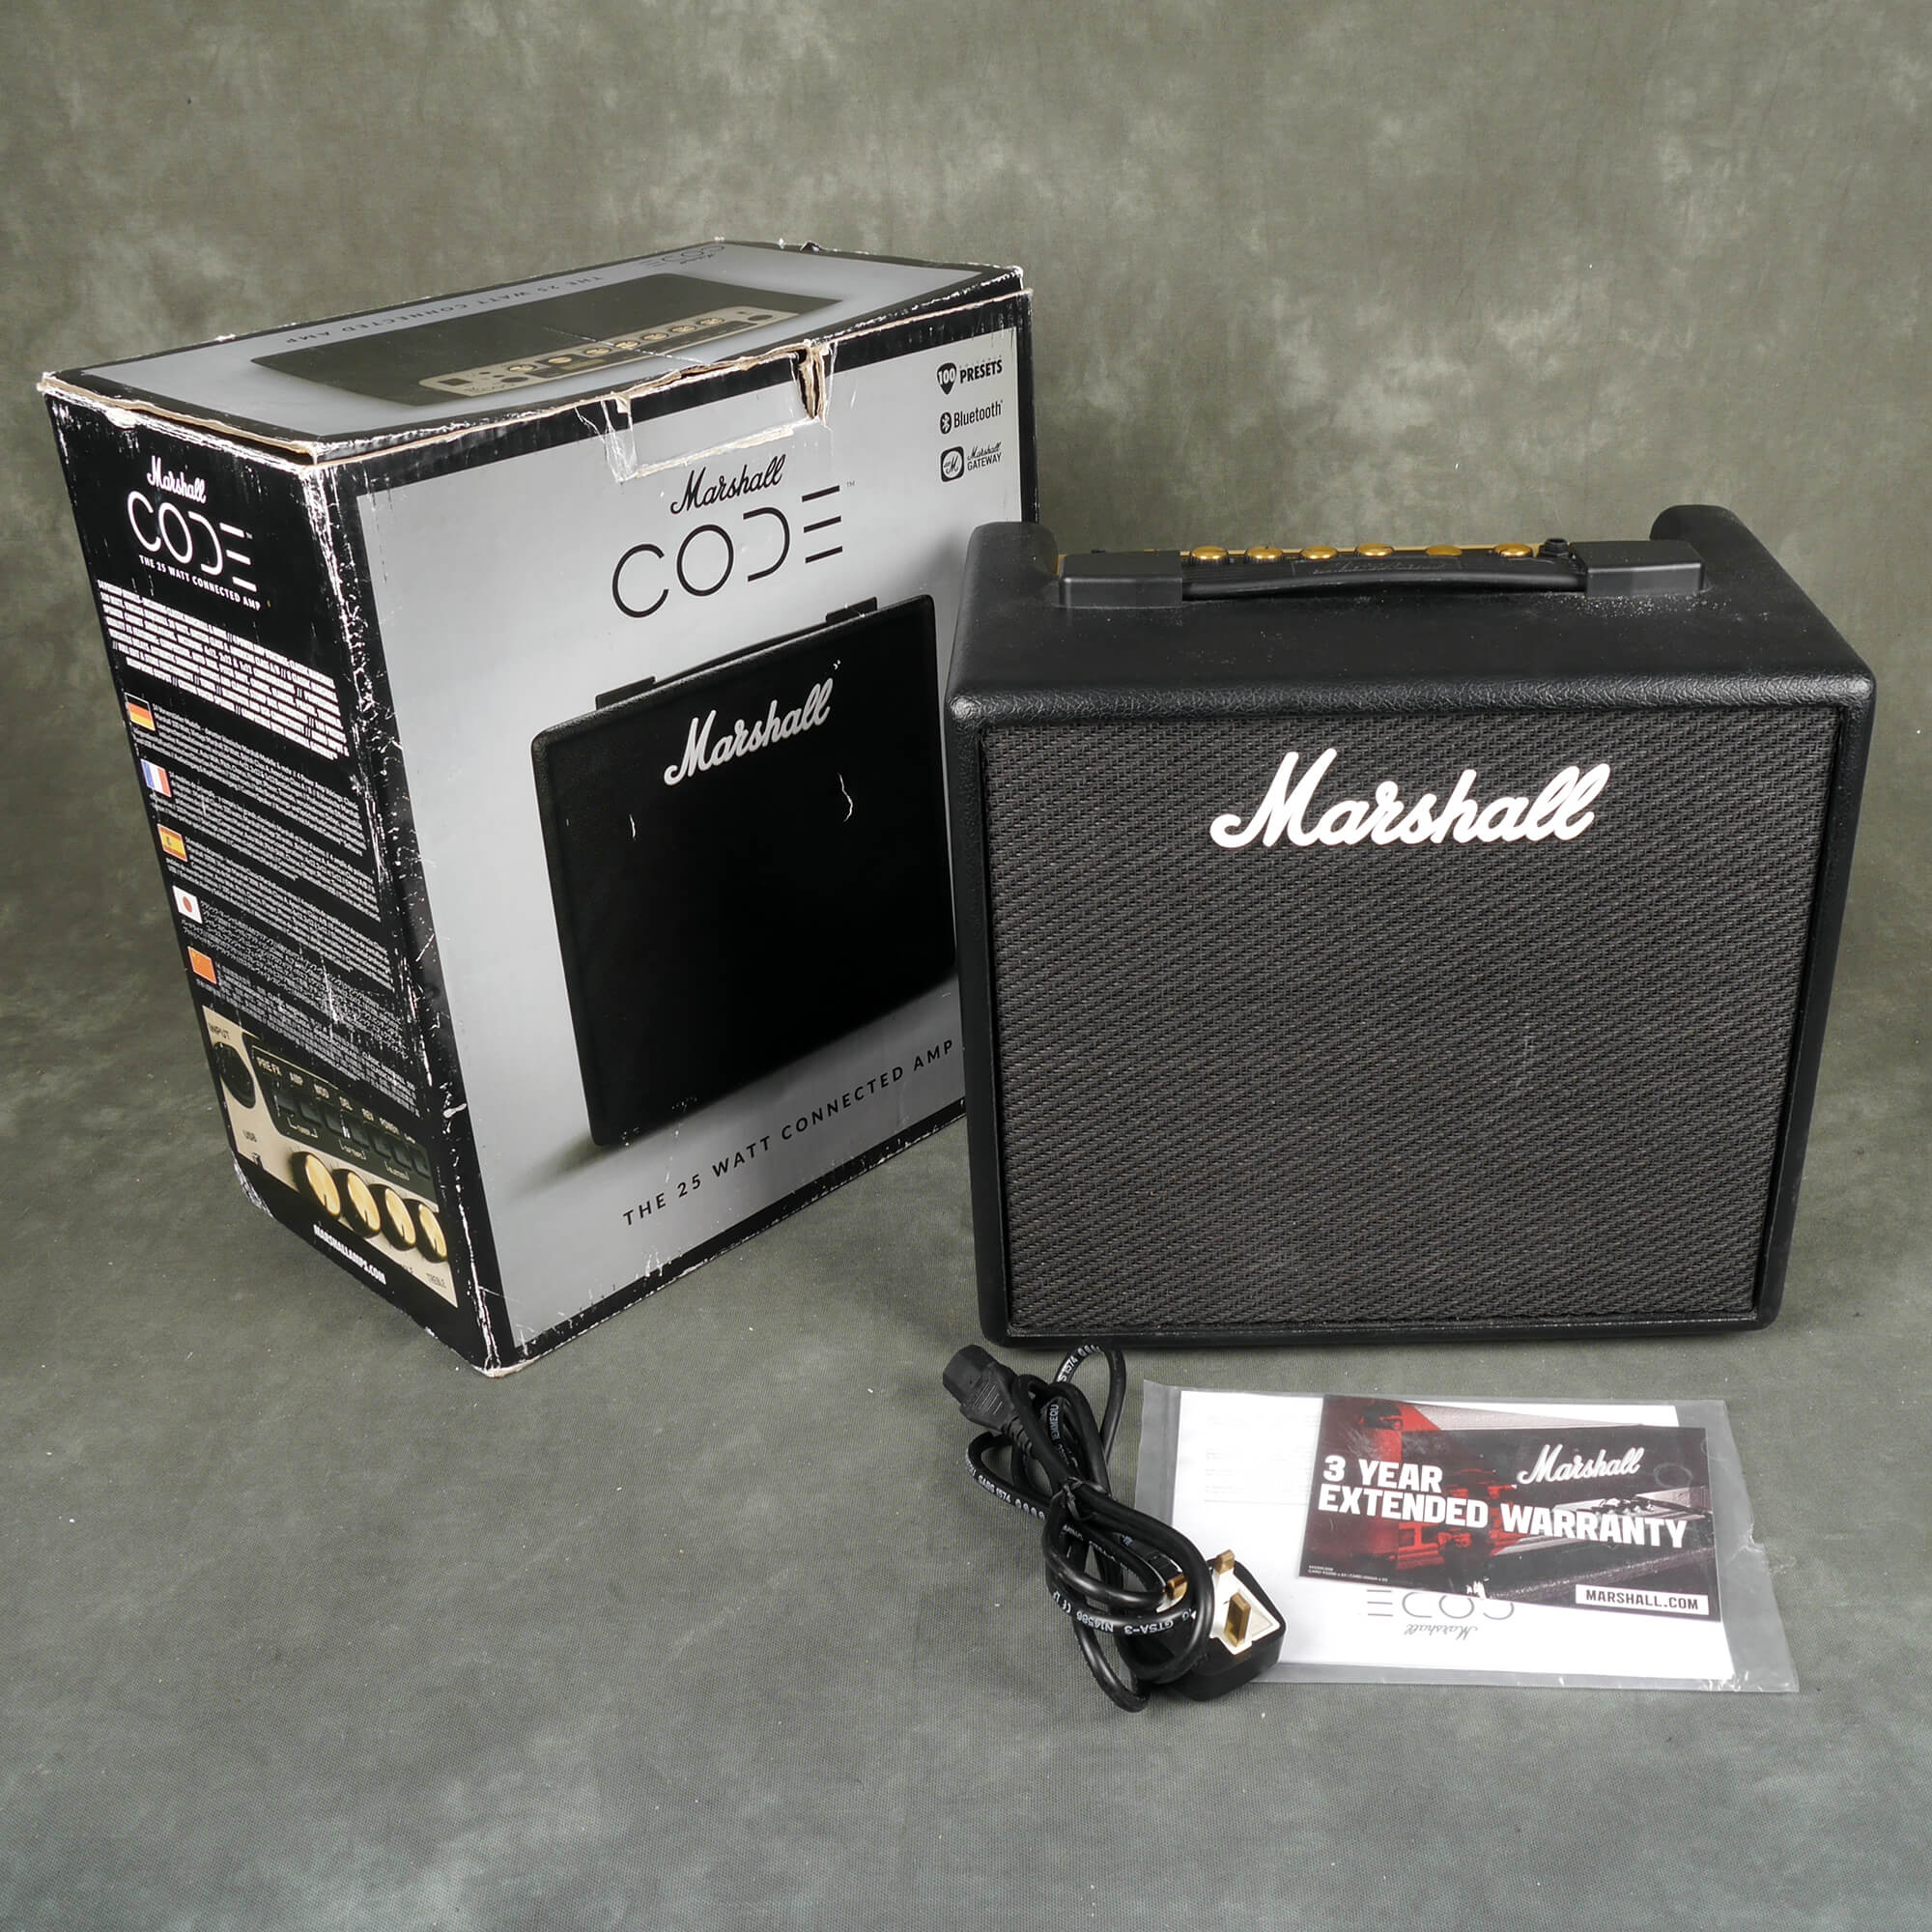 Marshall Code 25 Guitar Combo Amplifier w/Box - 2nd Hand